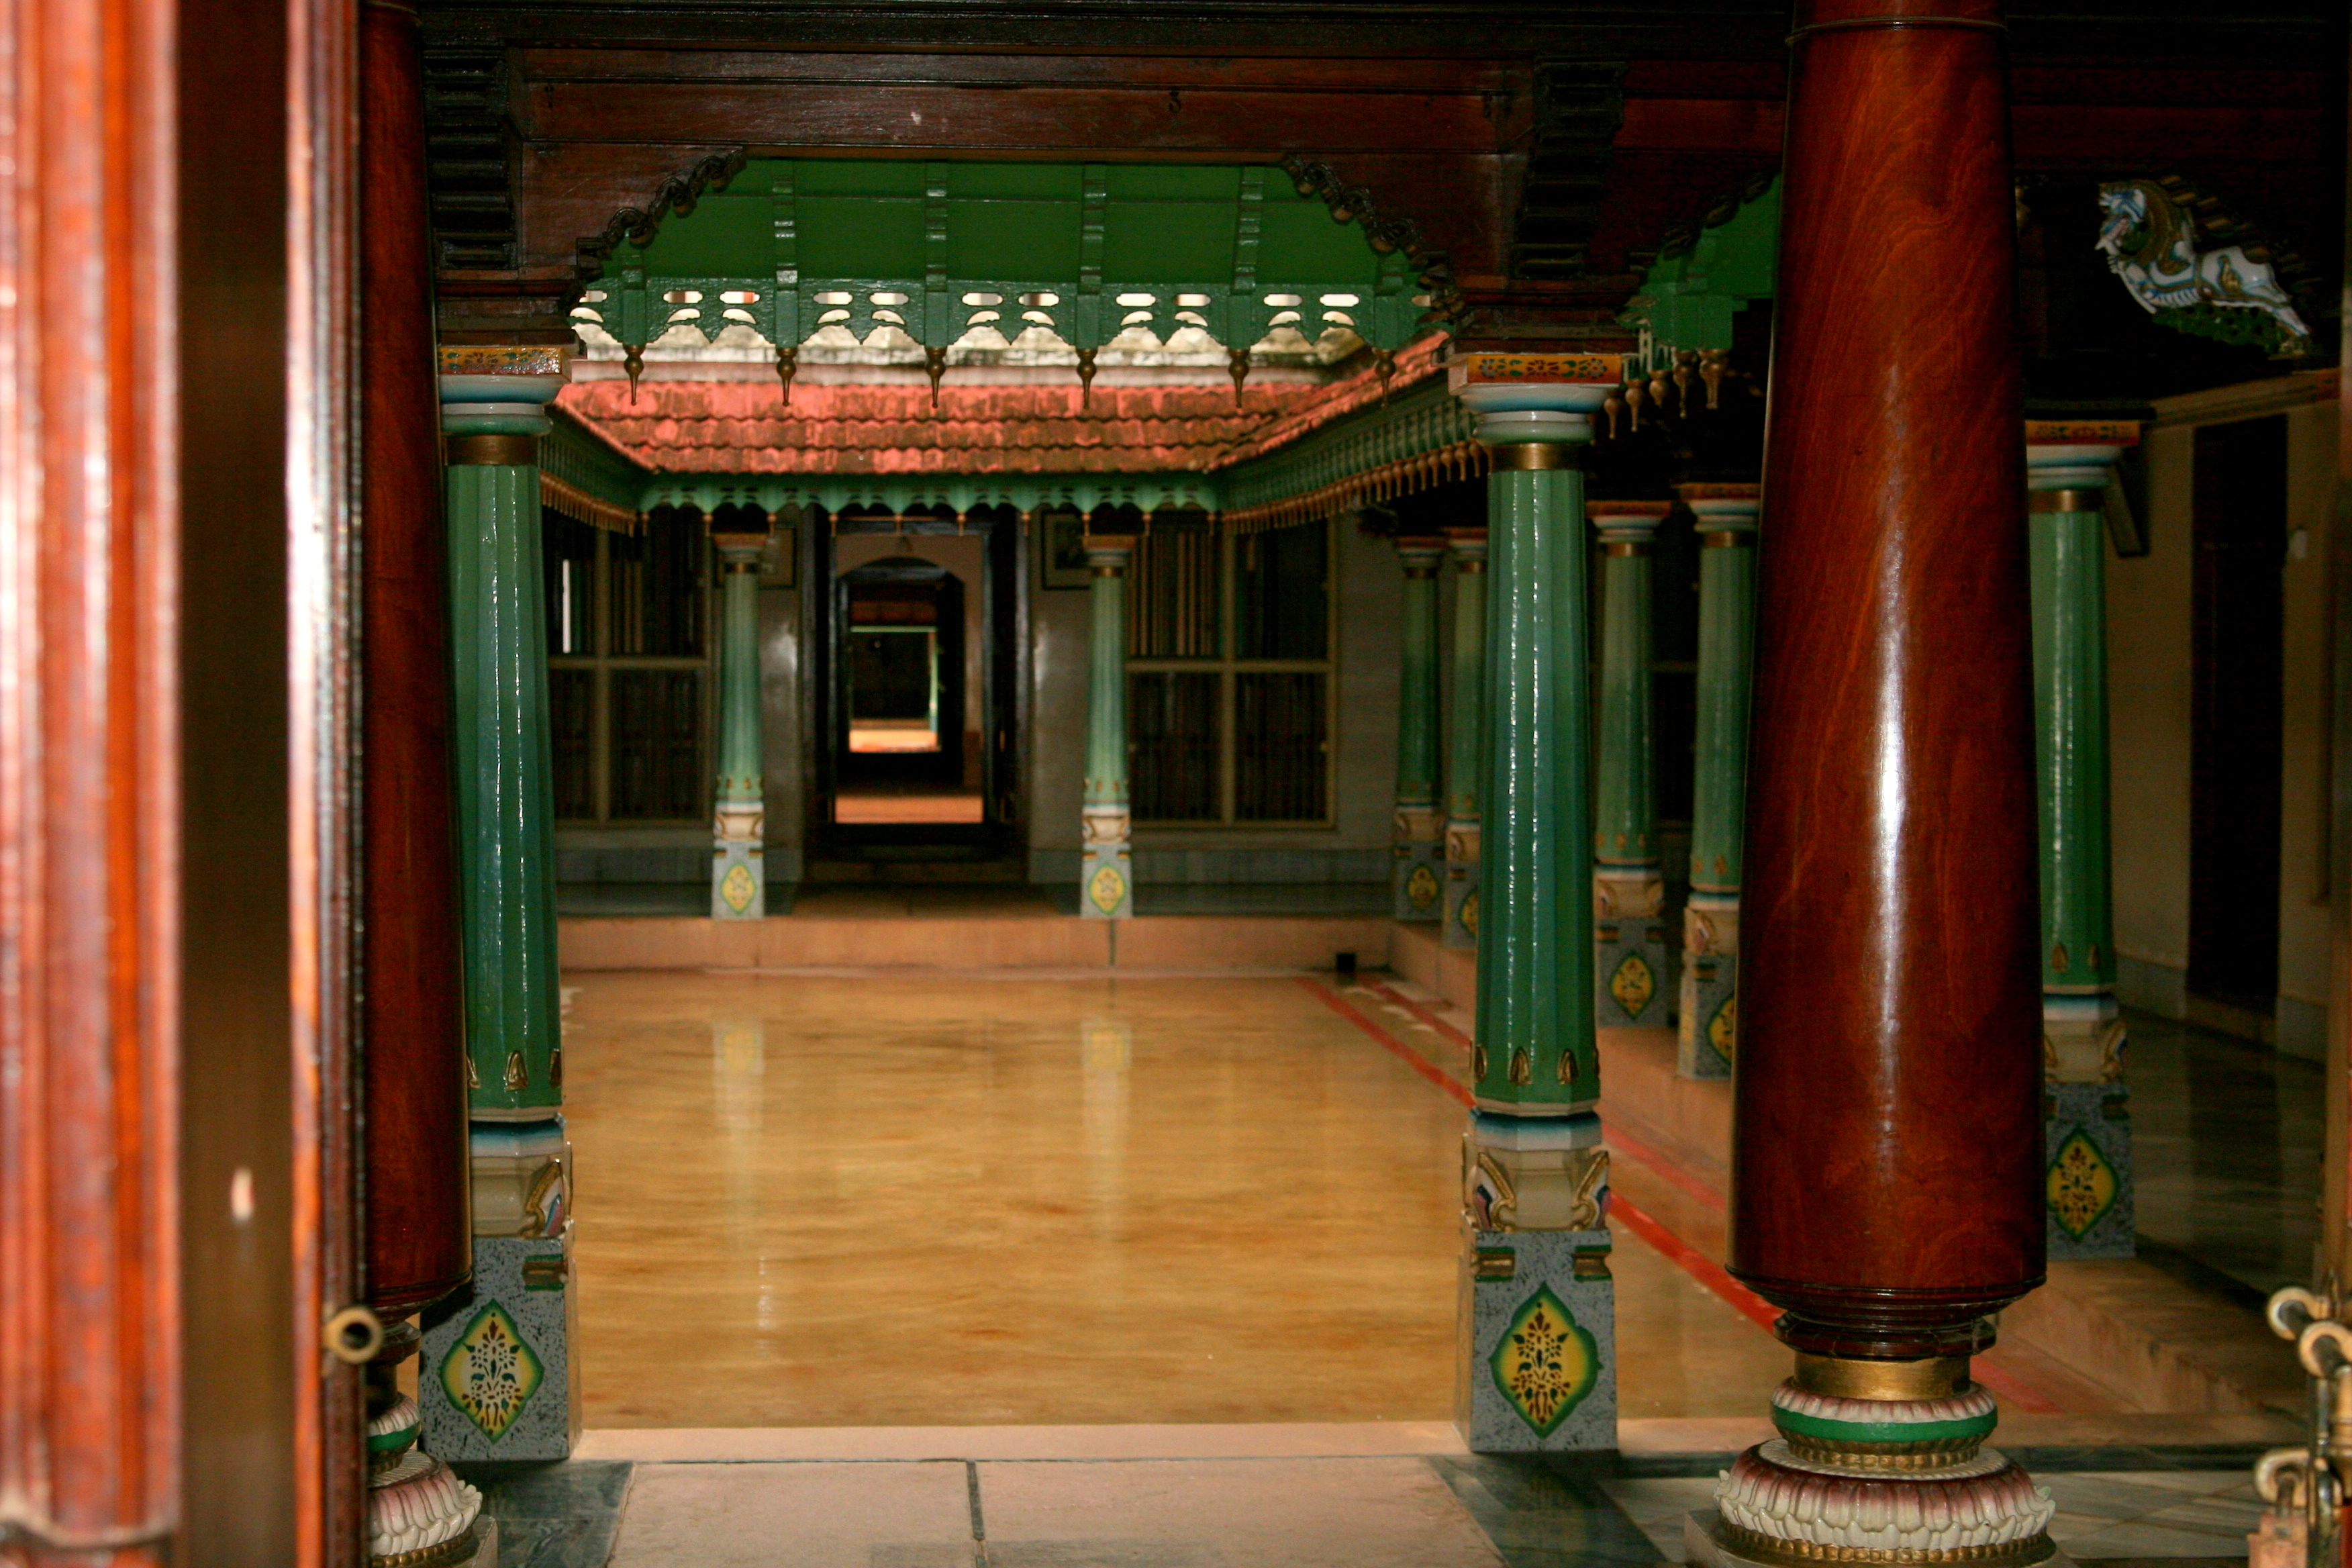 File:Chettinad house courtyard.jpg - Wikimedia Commons